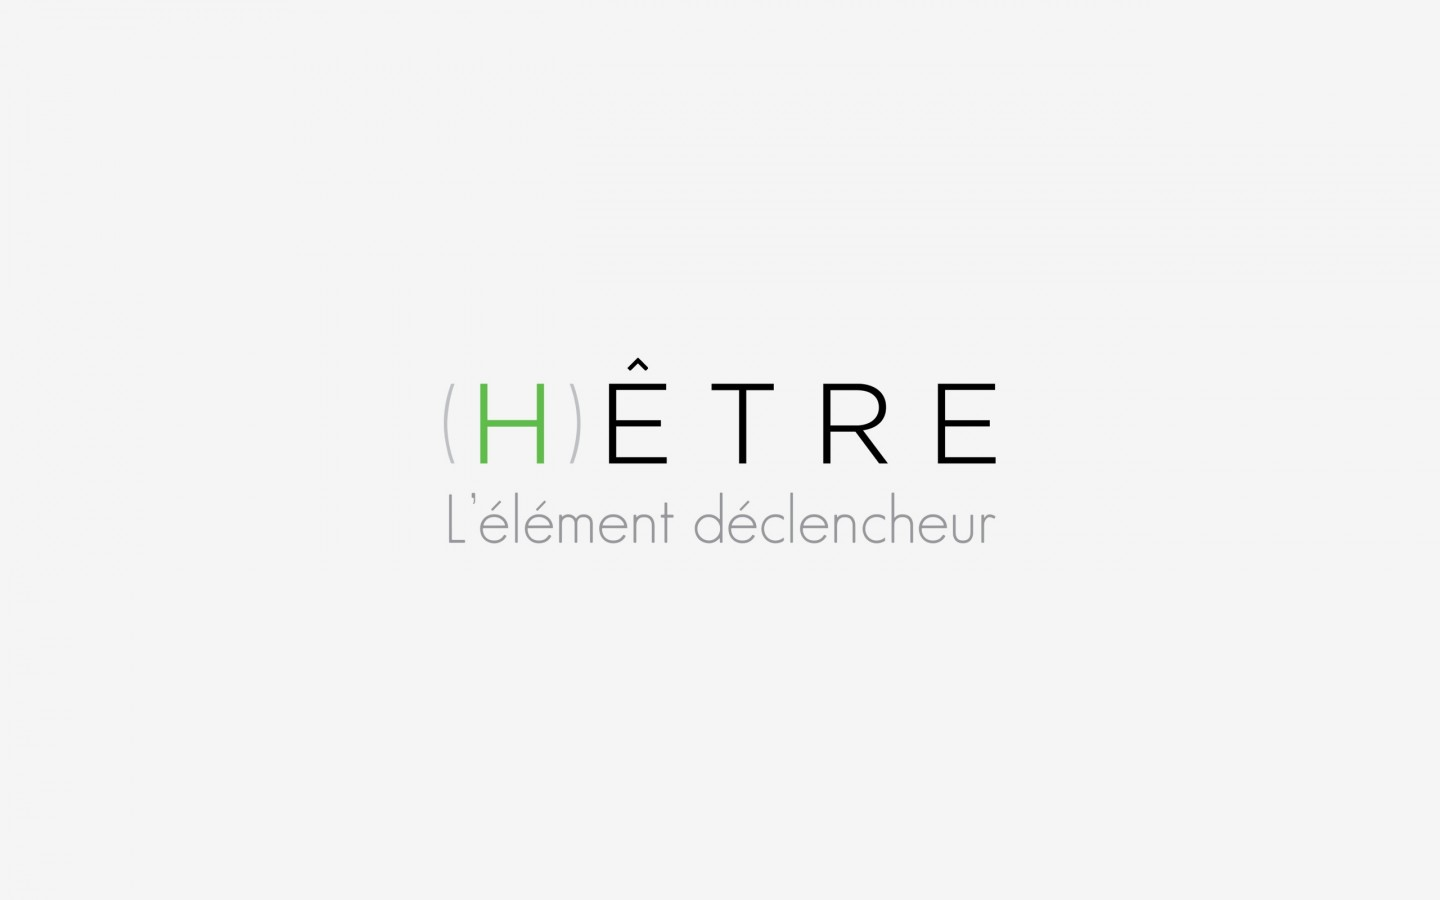 Hêtre Branding Project by Crevisio